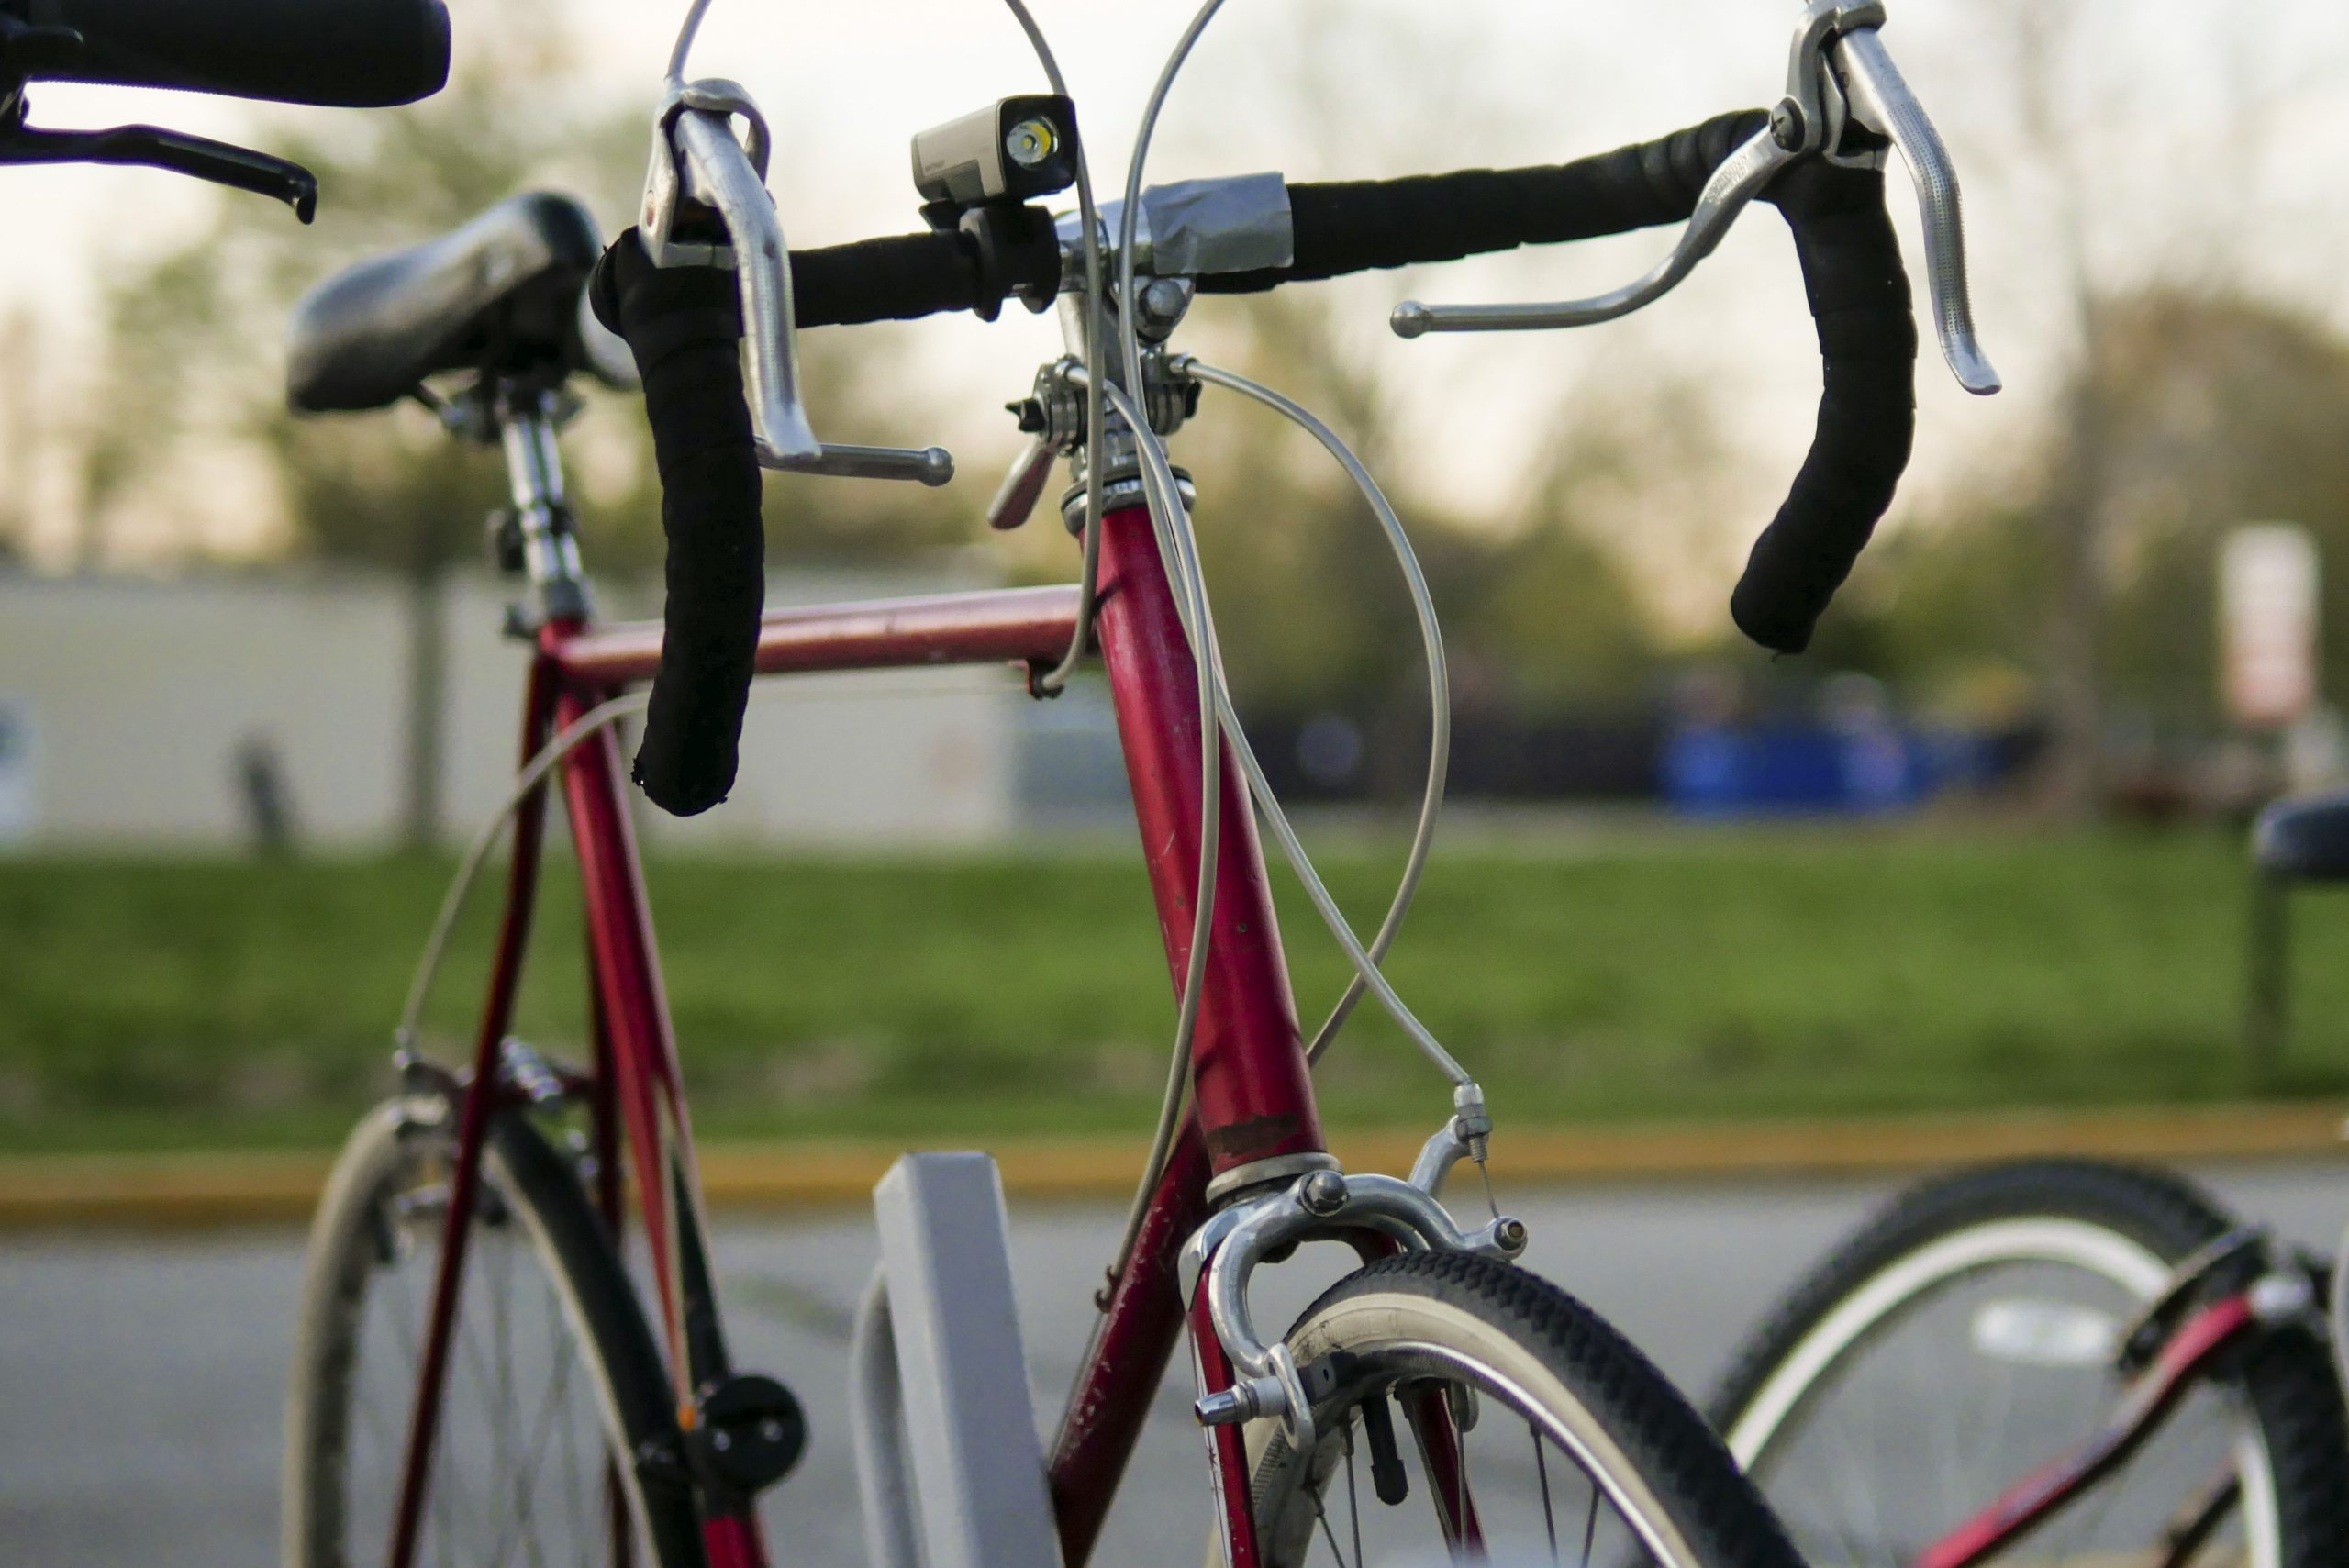 Bicycle parked on campus